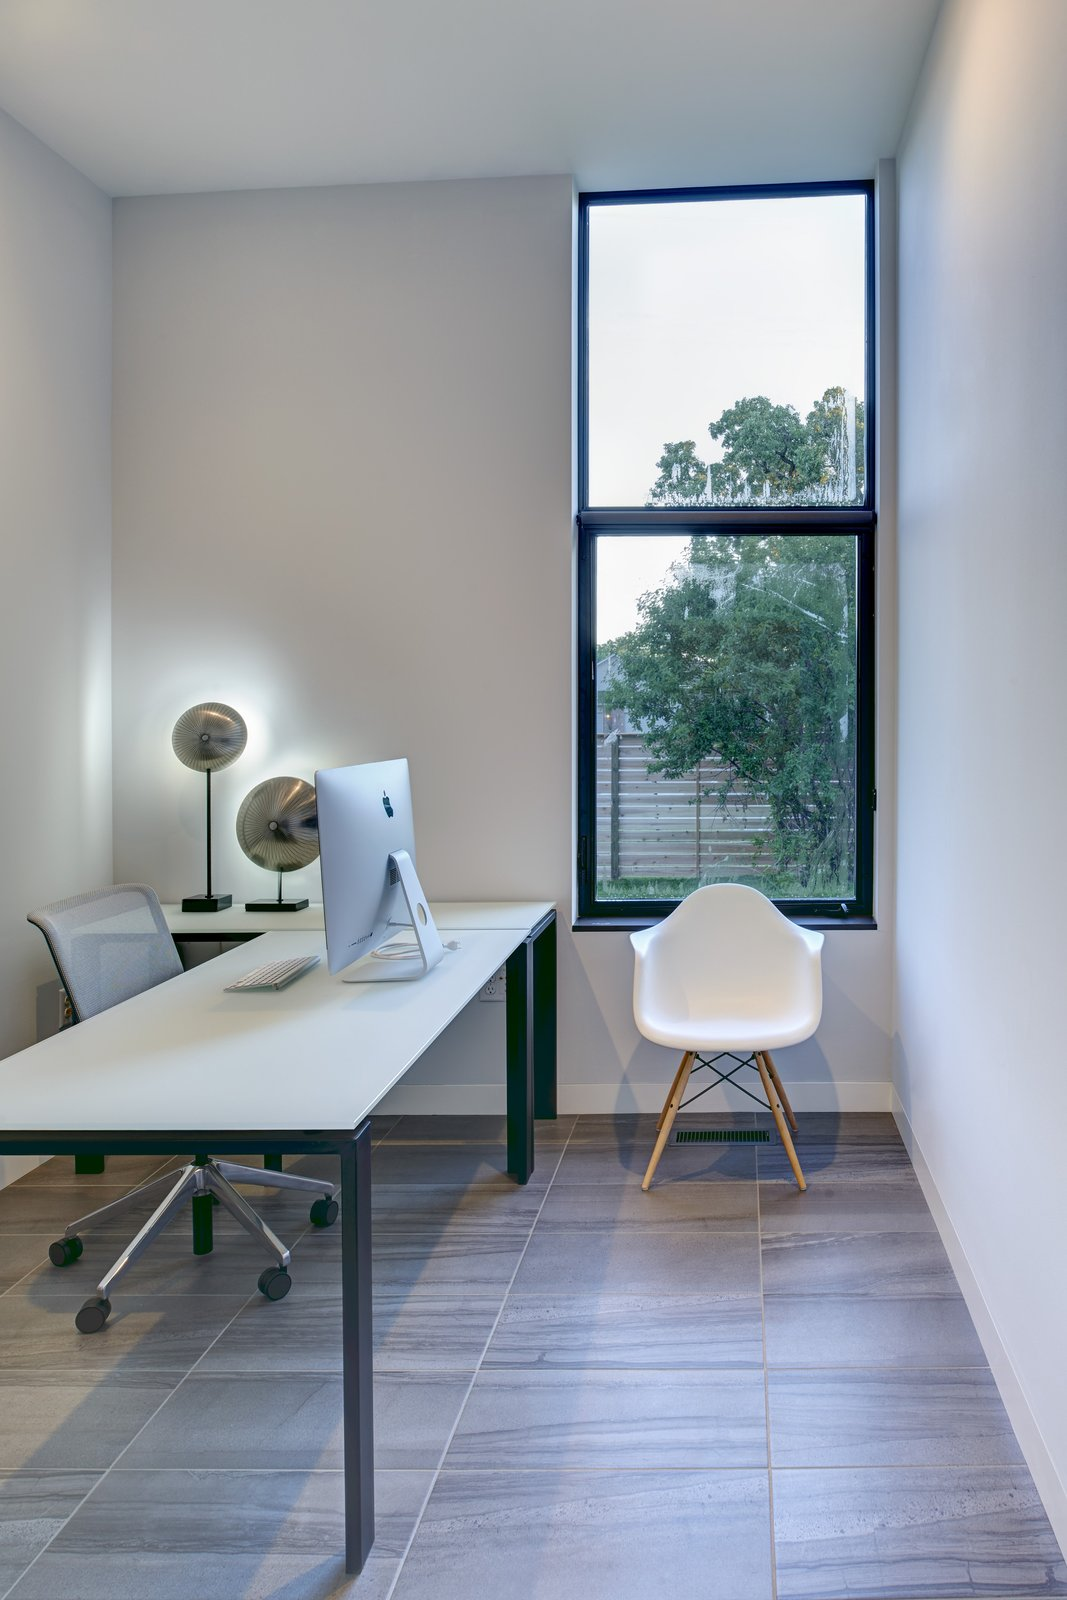 Office, Study Room Type, Chair, Lamps, Porcelain Tile Floor, and Desk A small office separates the master bedroom from the kitchen.  Koser I by Neumann Monson Architects